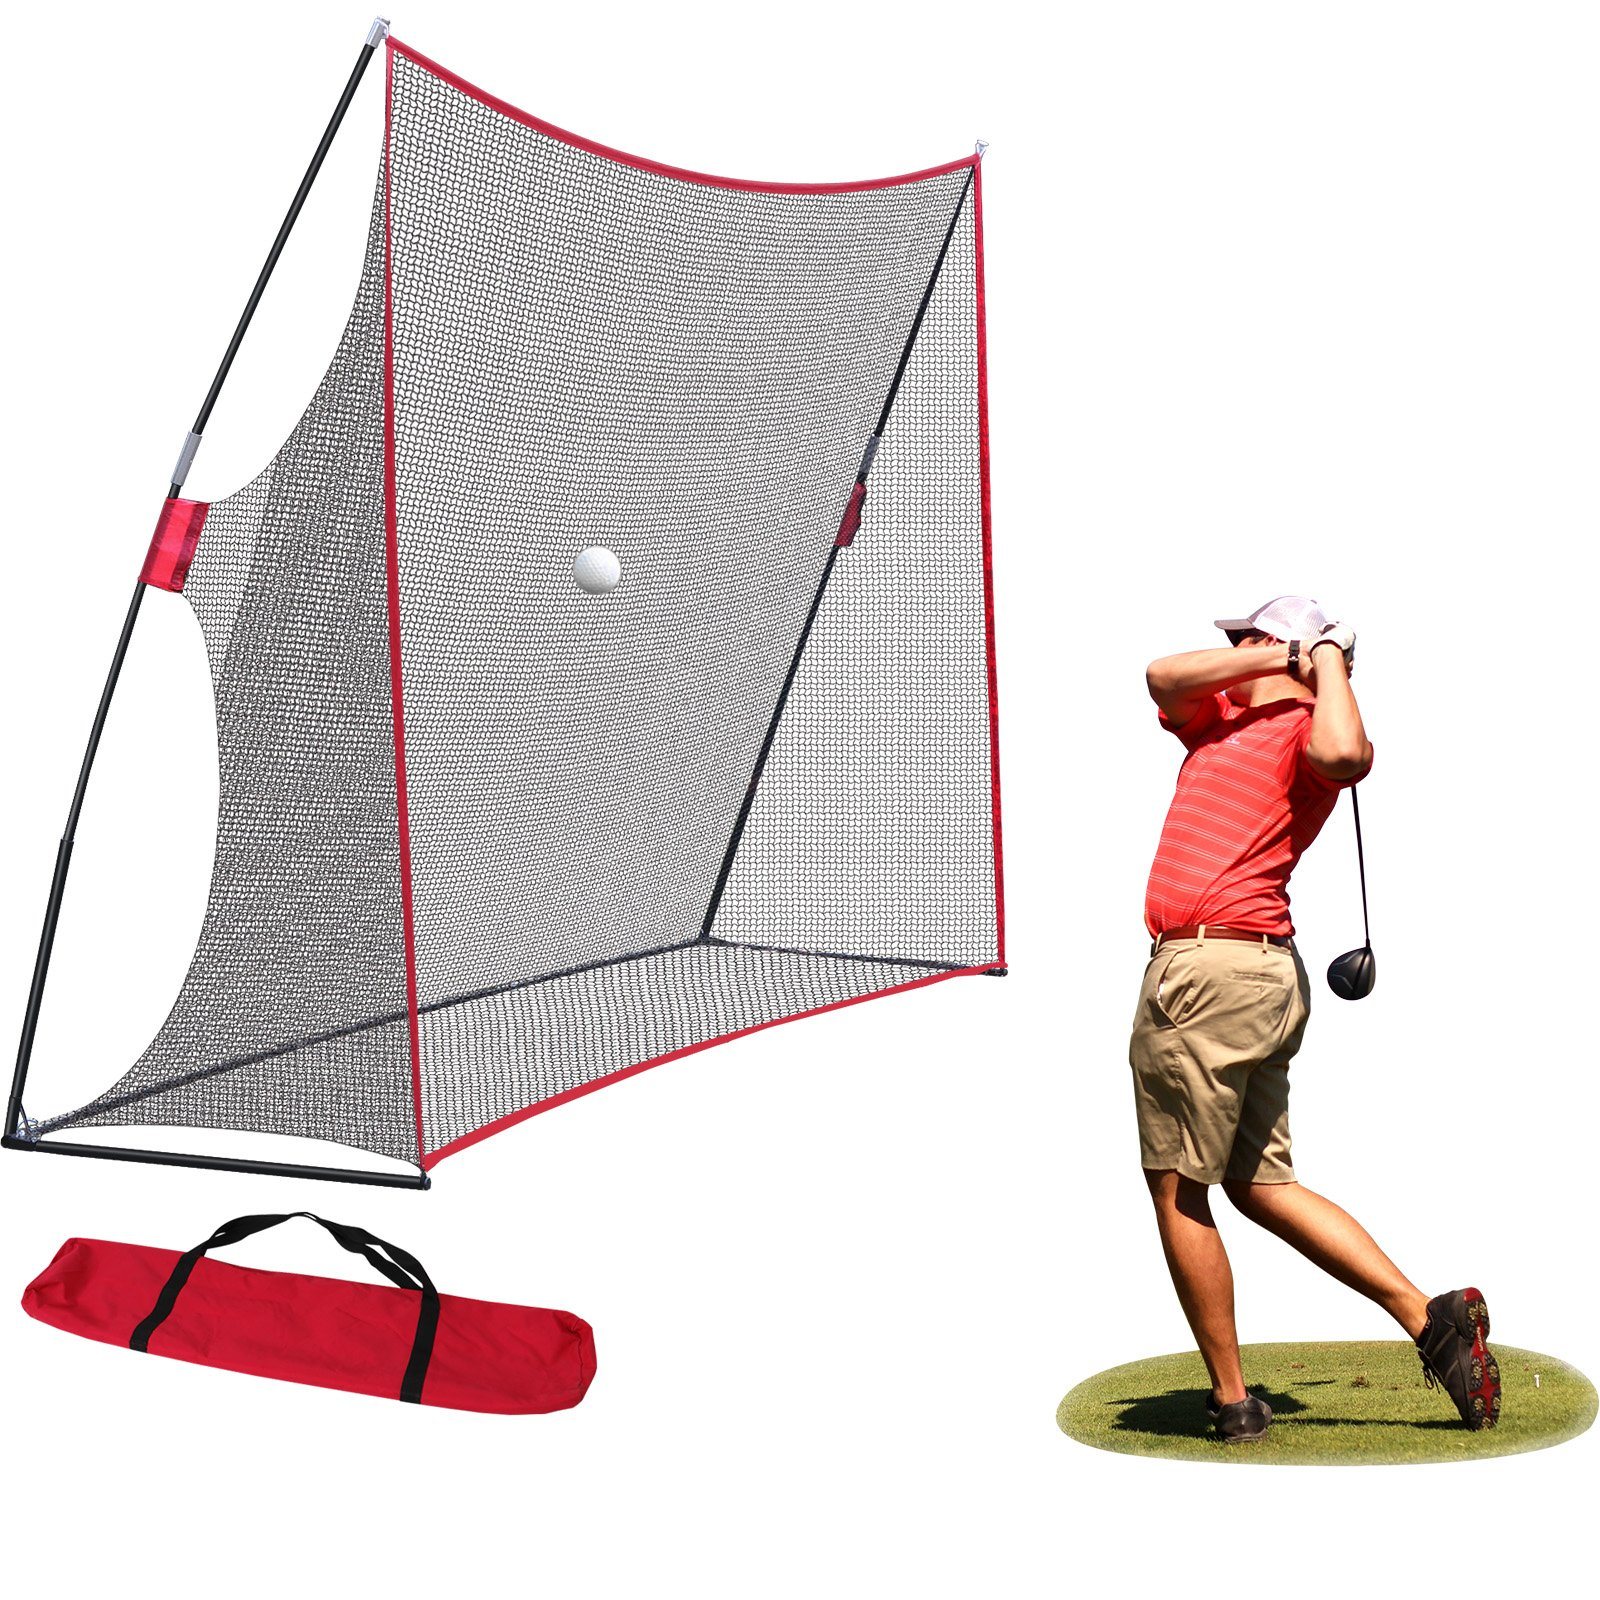 Nova Microdermabrasion Large 10x7ft Portable Golf Net Hitting Net Practice Driving Indoor Outdoor w/Carry Bag by Nova Microdermabrasion